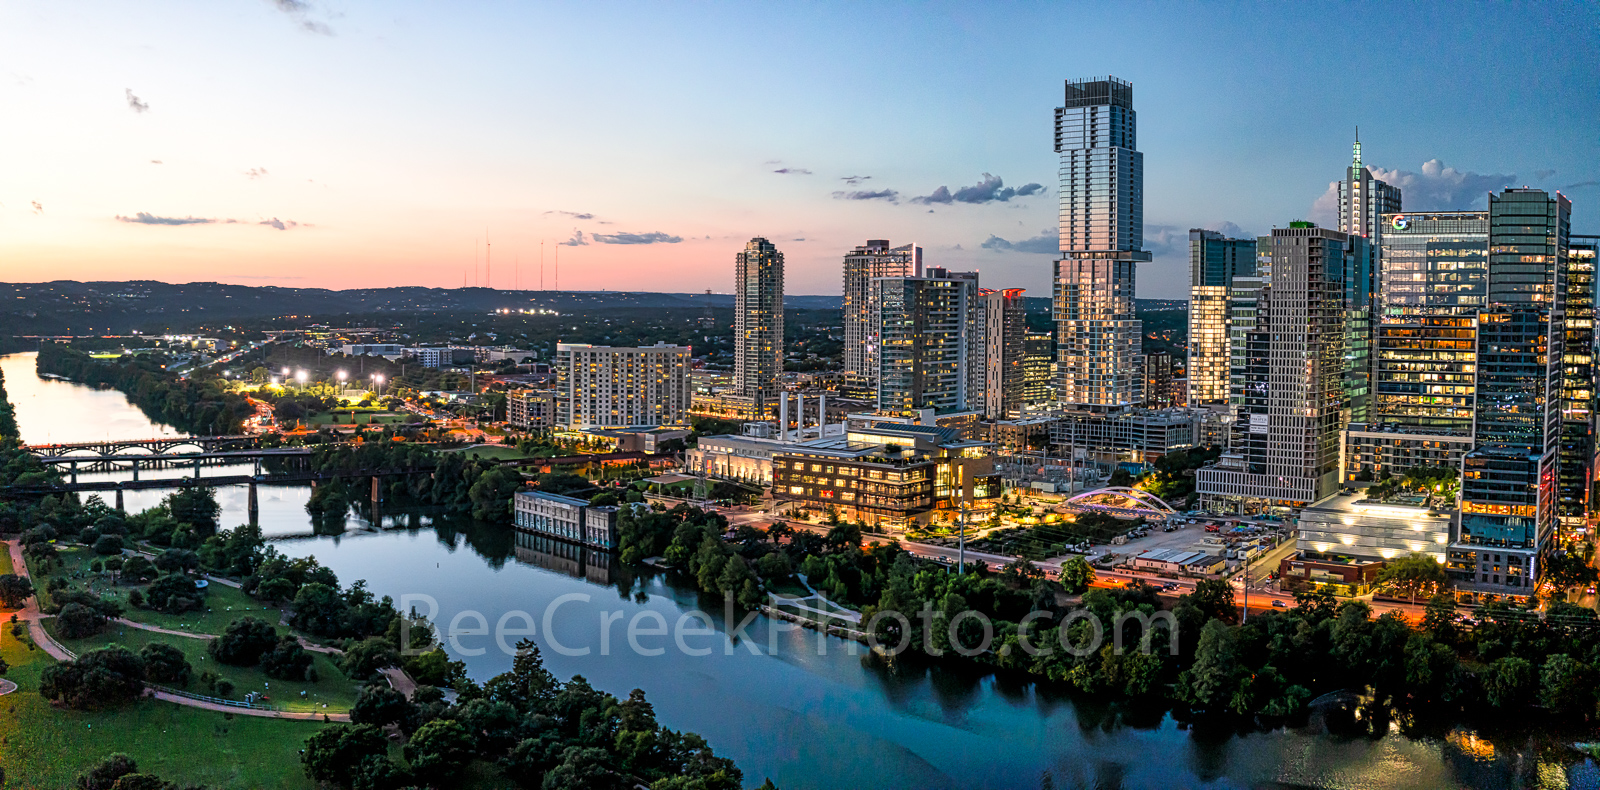 Austin Skyline, austin lady bird lake, dusk, twilight, Austin, skyline, austin skyline pictures, aerial, twilight, dusk, blue hour, lady bird lake, hike and bike trail, cityscape, water, pano, butler , photo